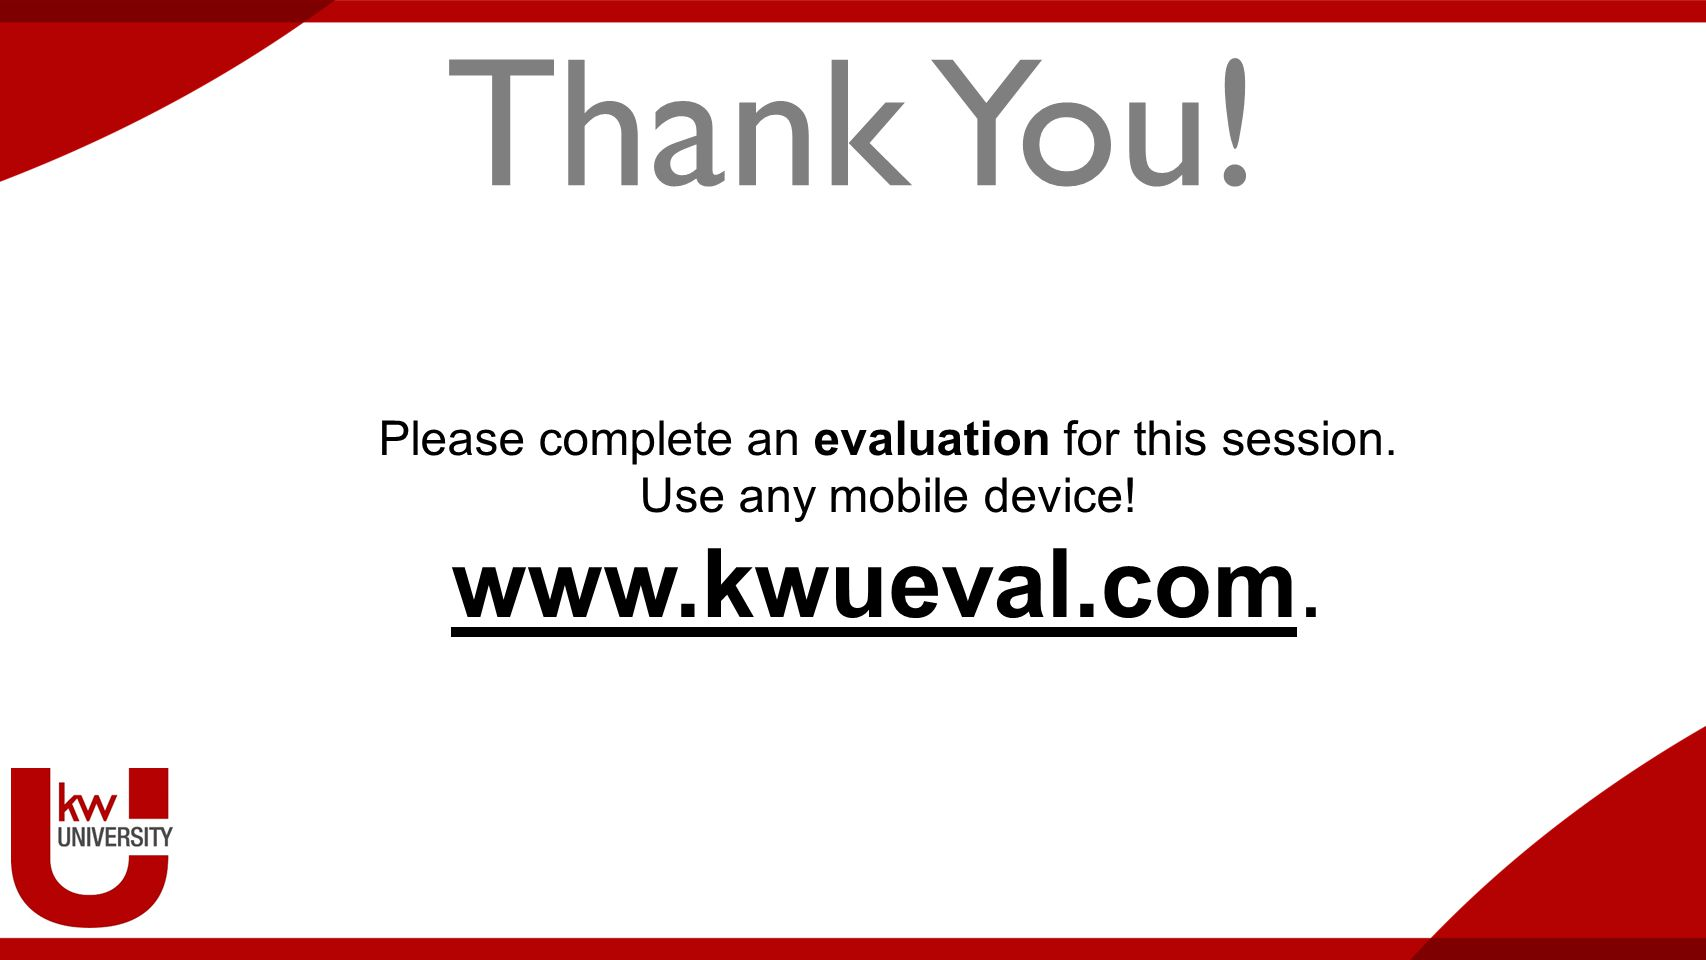 Thank You! Please complete an evaluation for this session. Use any mobile device! www.kwueval.com.